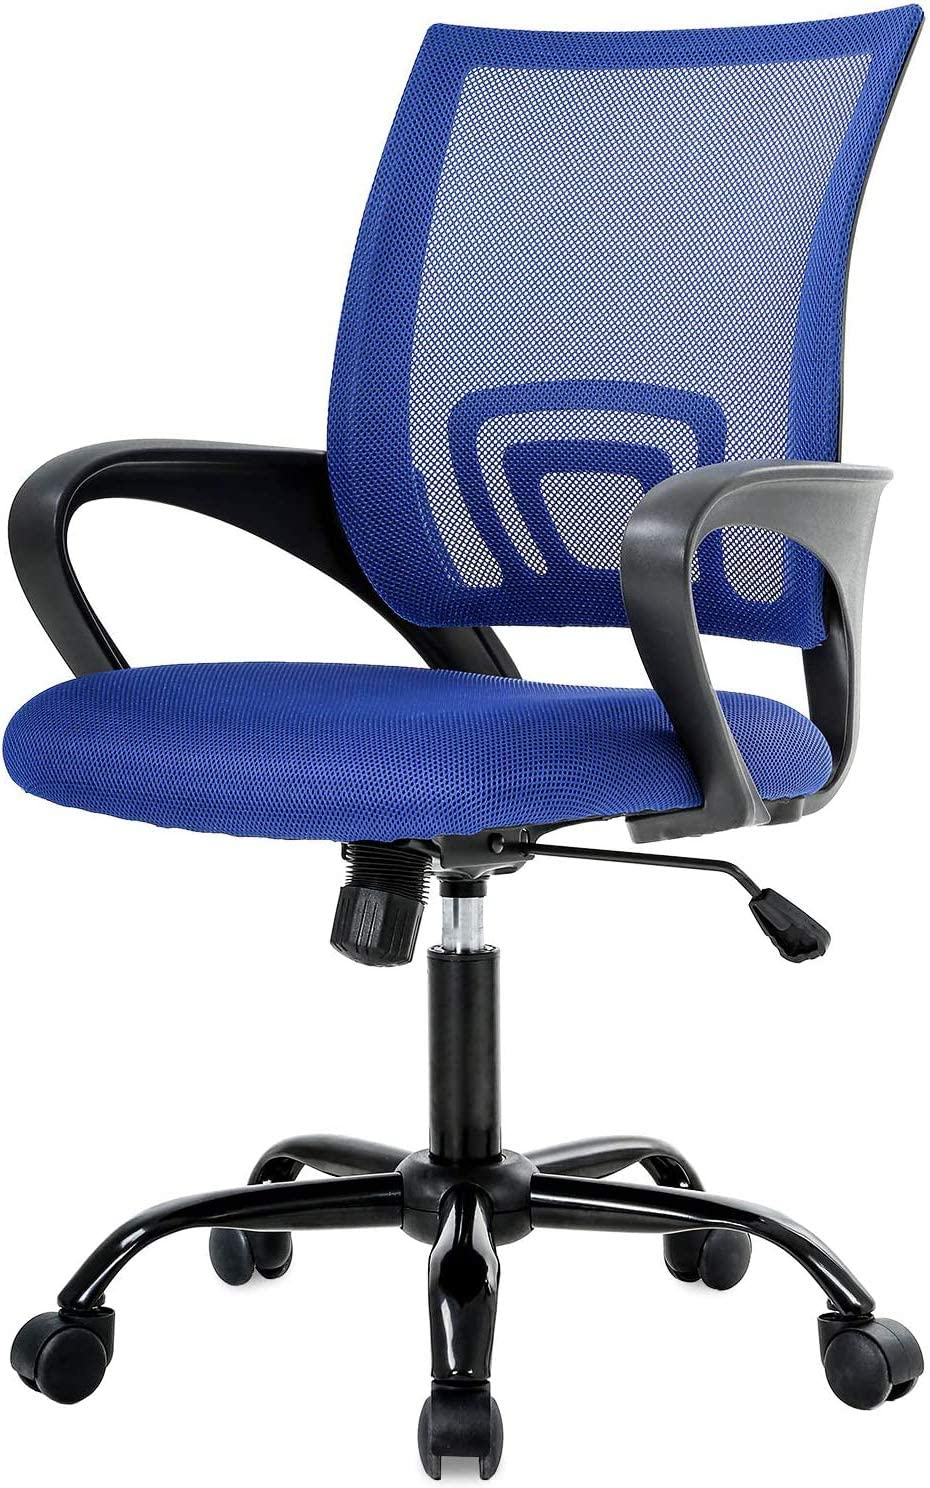 Simple Home Ergonomic Desk Office Chair Mesh Computer Chair, Lumbar Support Modern Executive Adjustable Stool Rolling Swivel Chair for Back Pain, Chic Modern Best Home Computer Office Chair - Blue